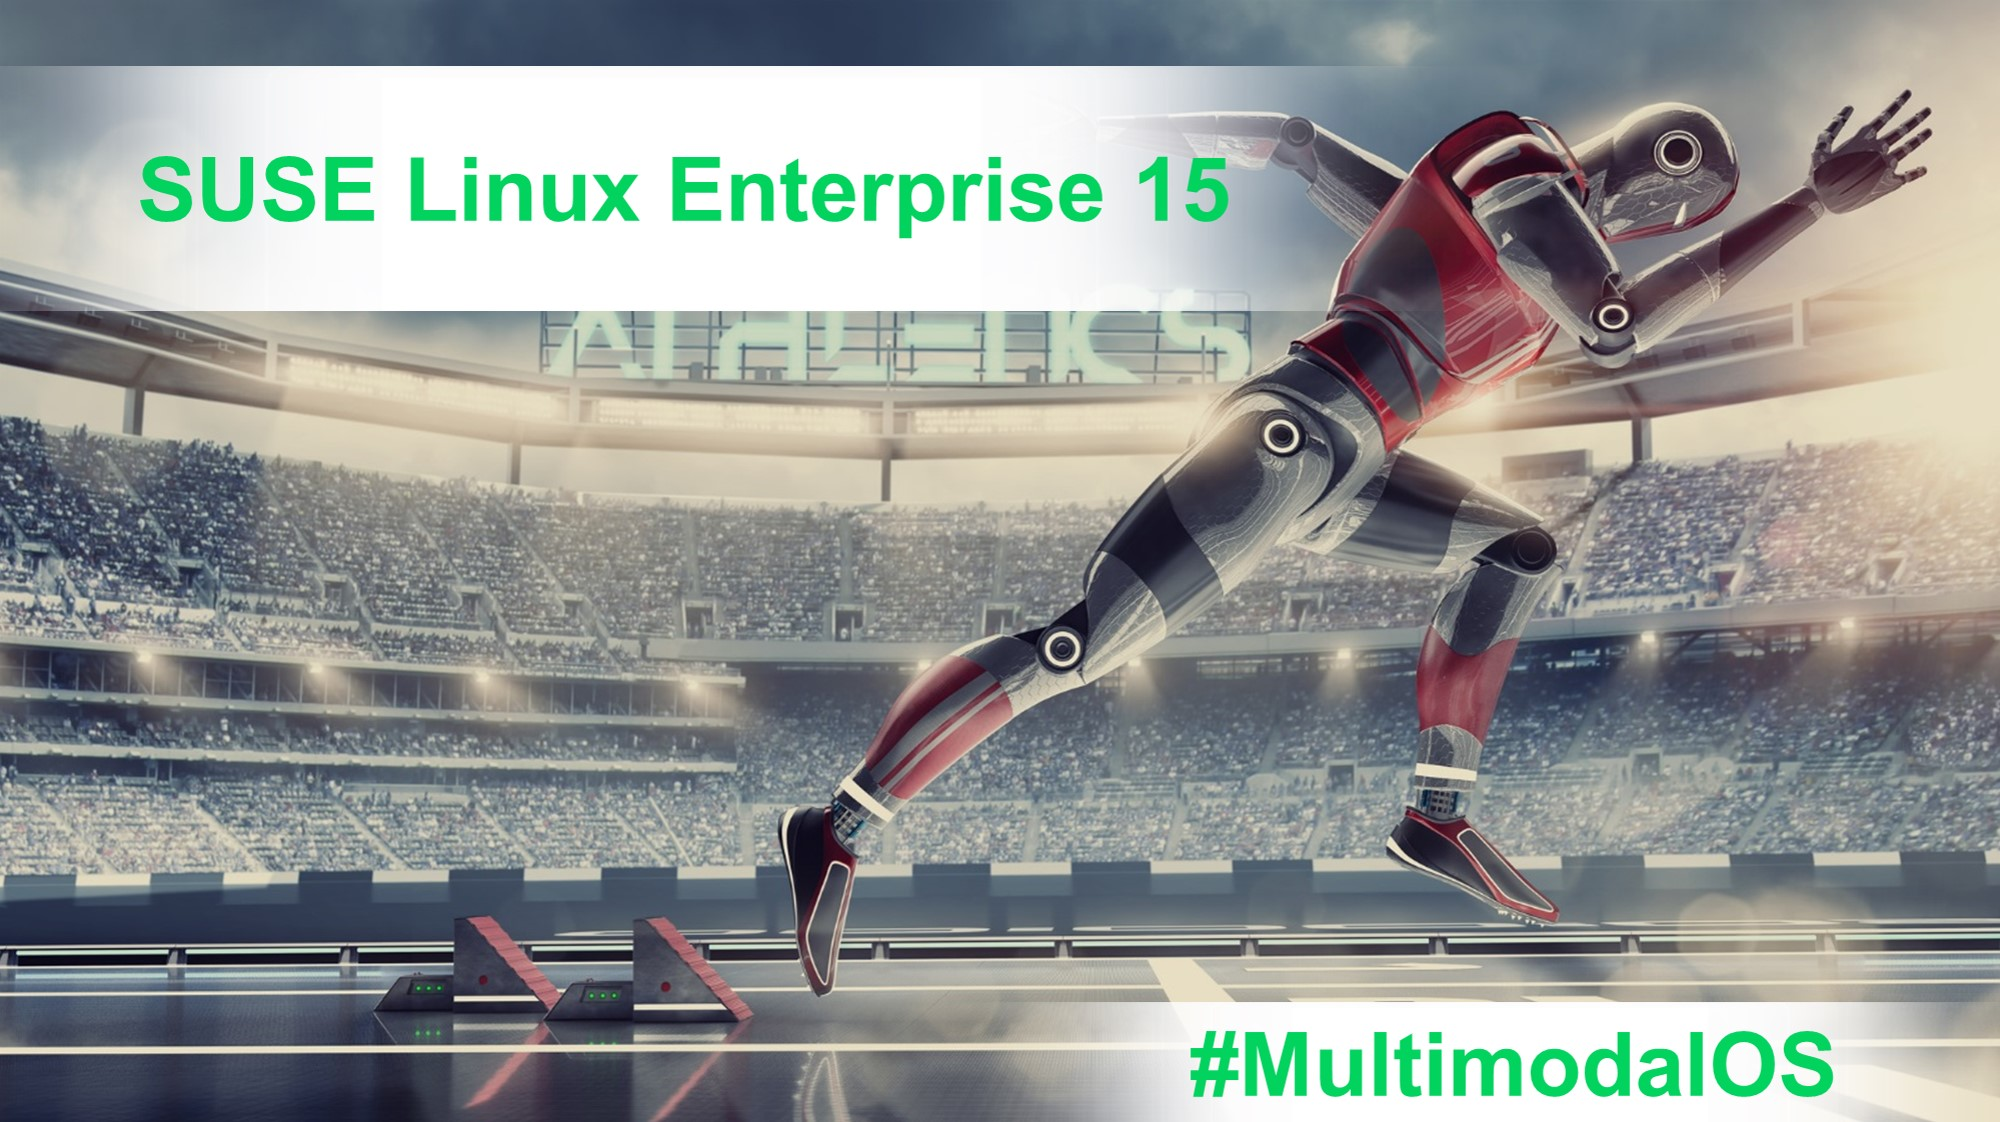 #MultimodalOS - SUSE Linux Enterprise 15